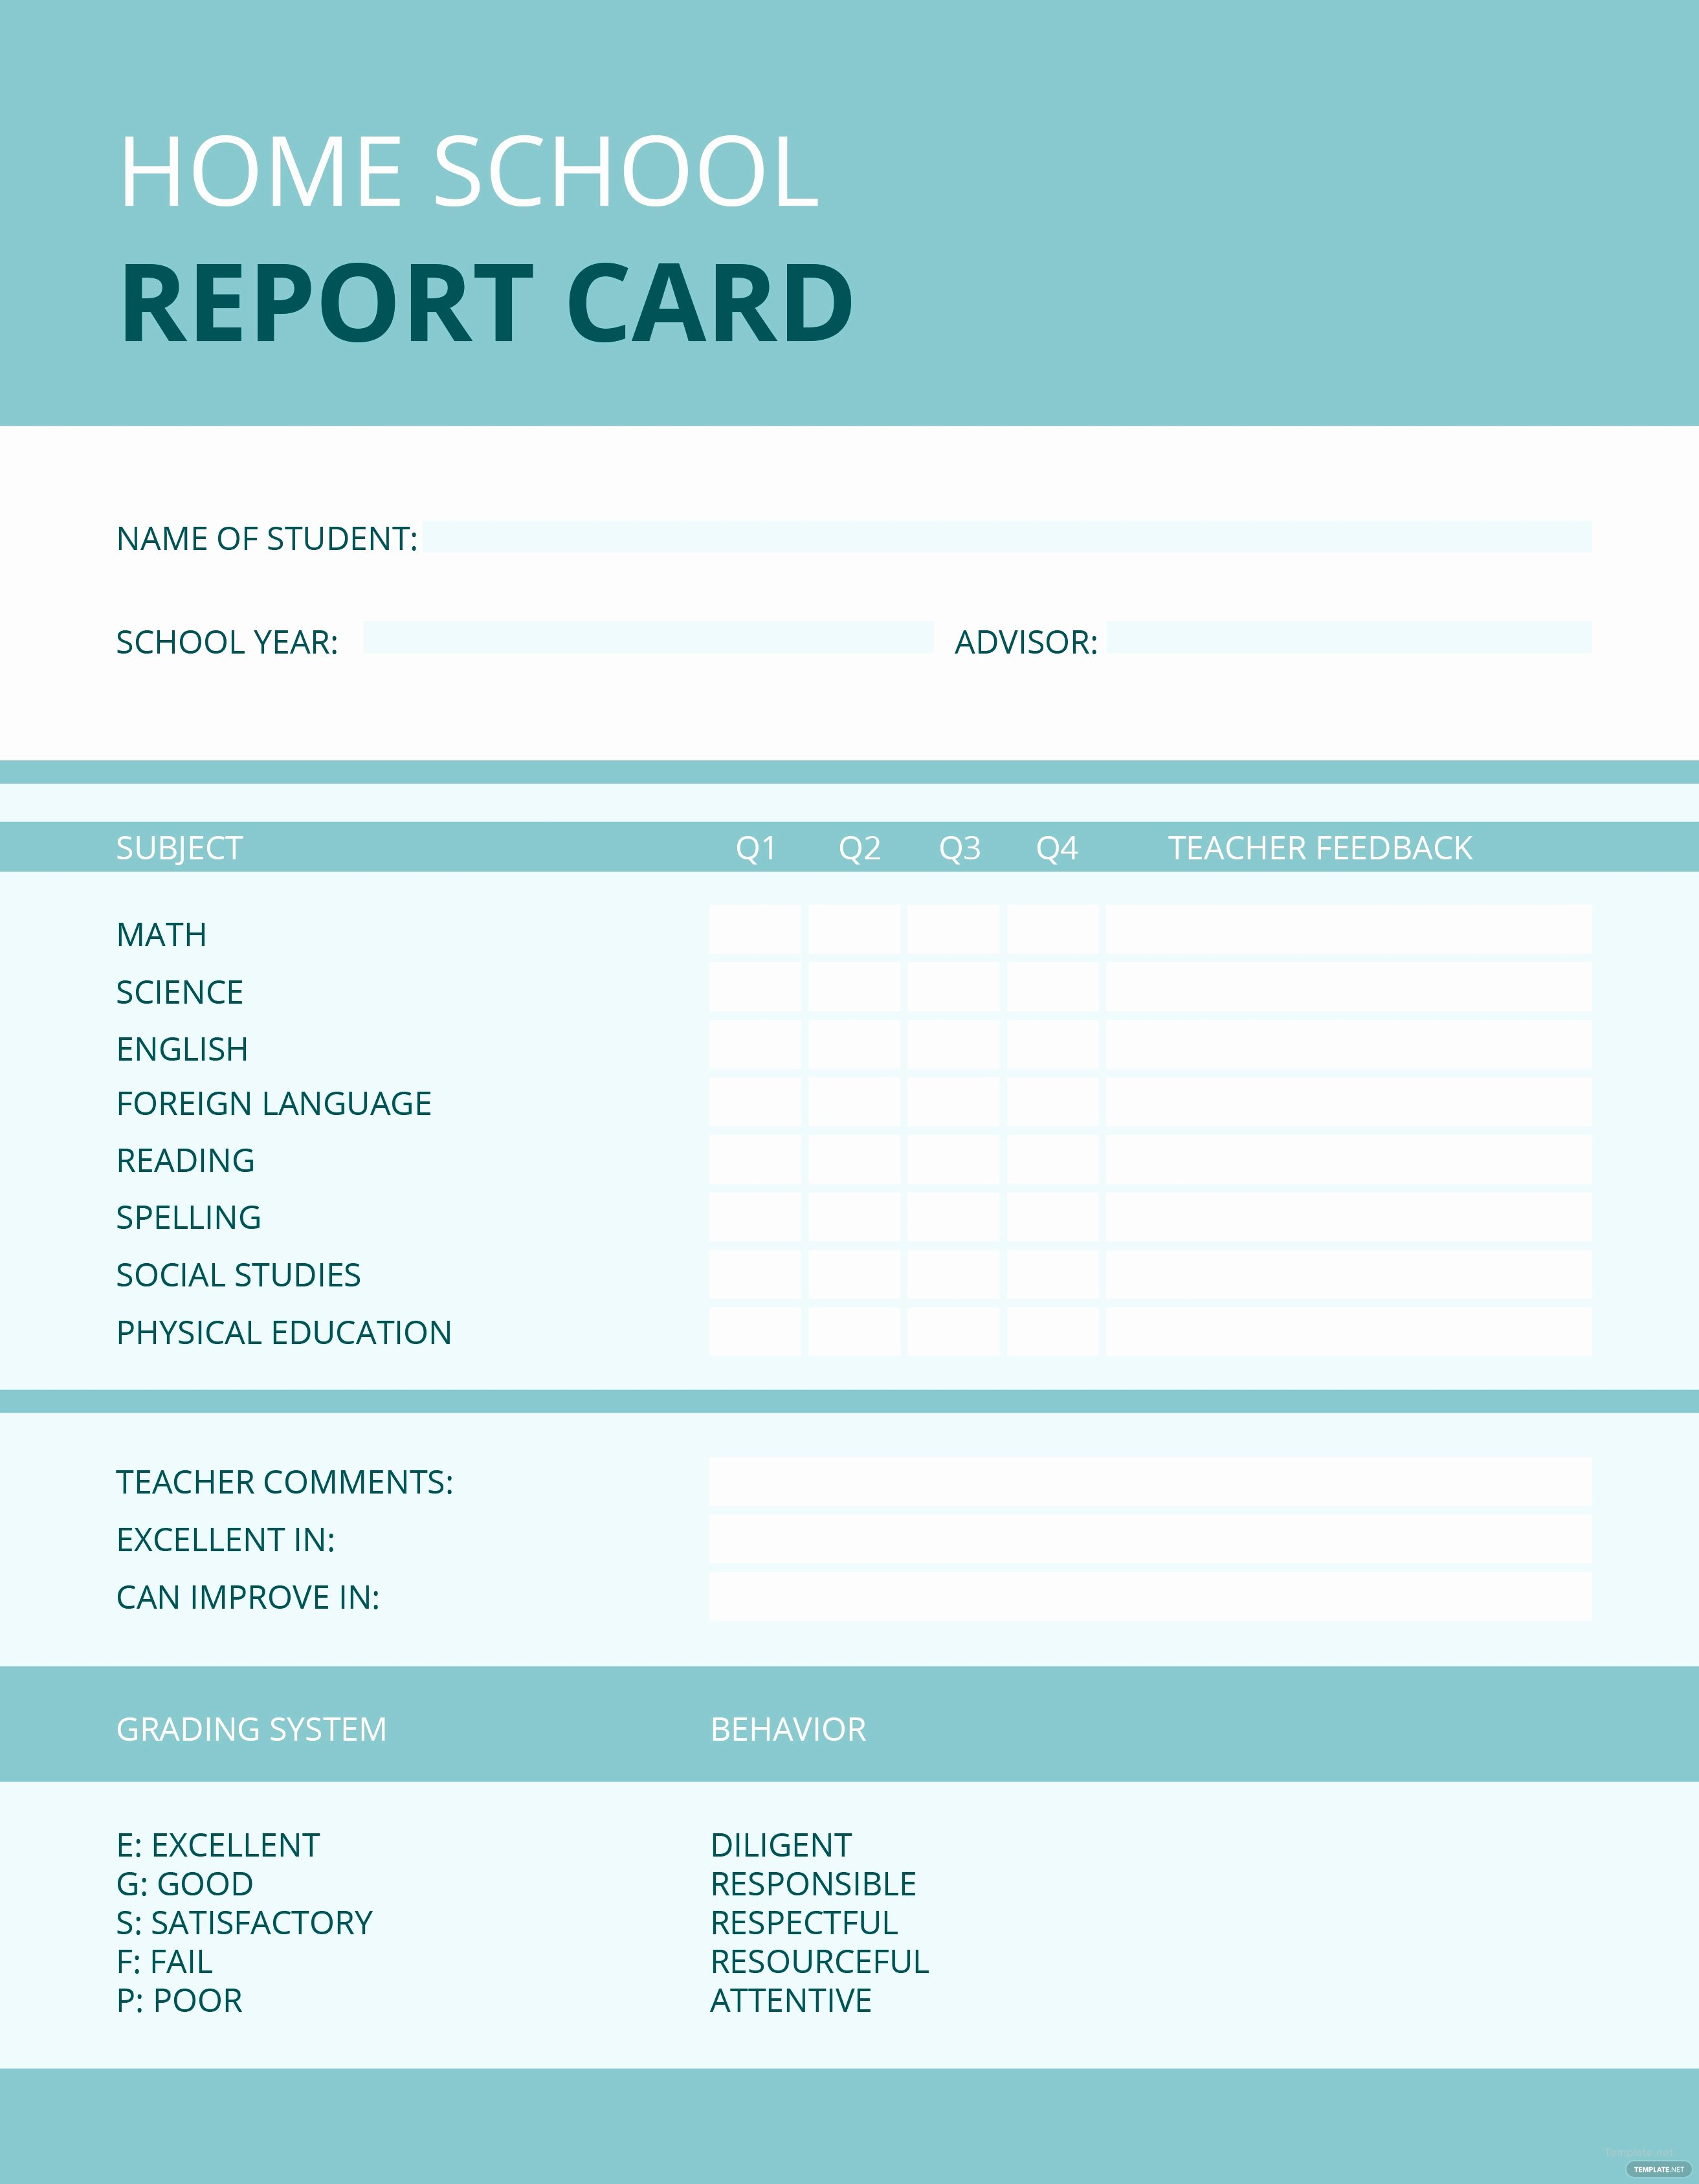 College Report Card Template Elegant Free Home School Report Card Template In Microsoft Word